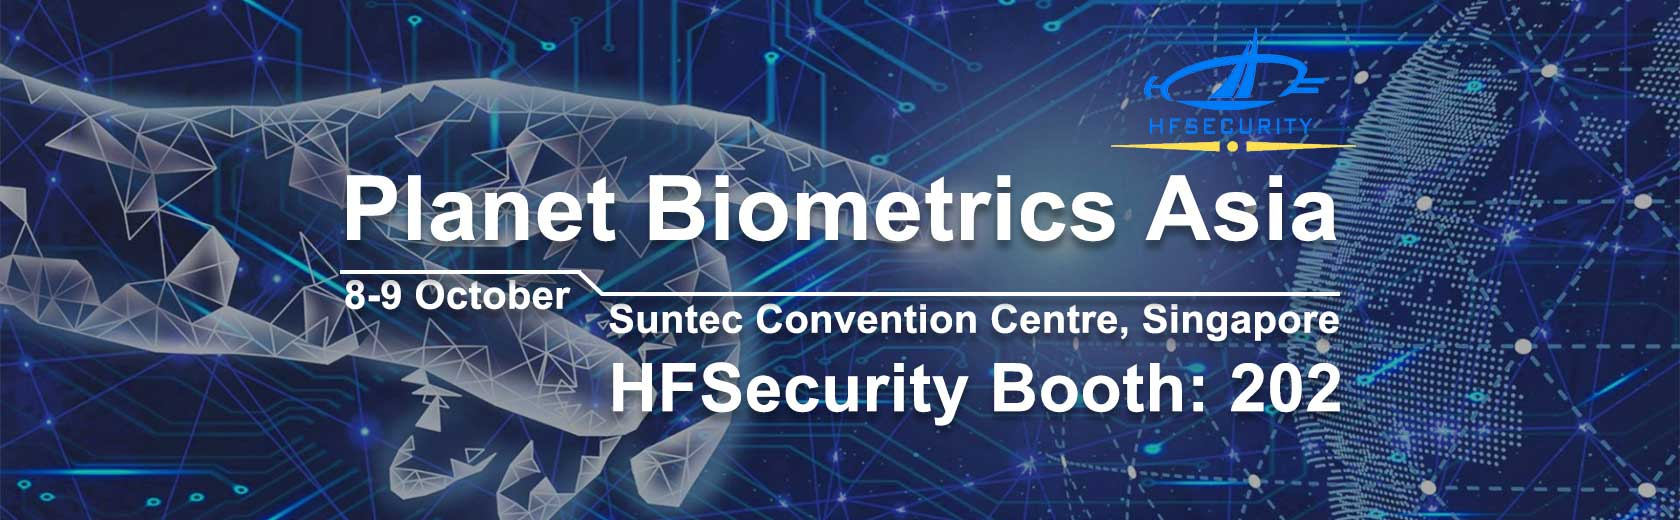 Planet Biometric Asia -HFSecurity